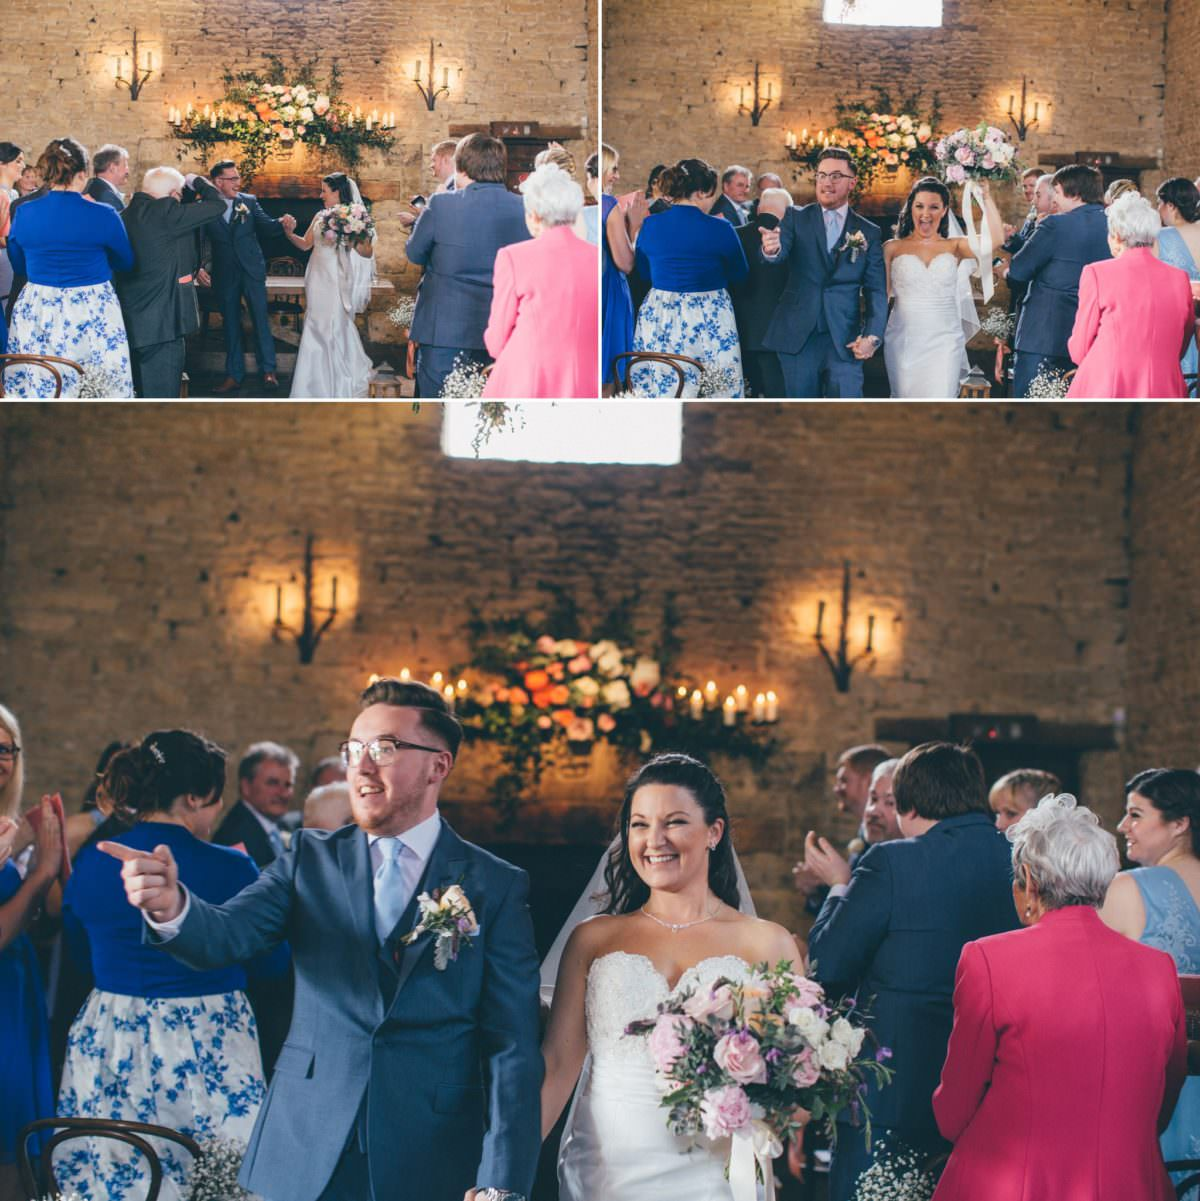 cripps_barn_gloucesterhsire_welsh_wedding_photographer_rachel_lambert_photography_jordan_amy_ 65